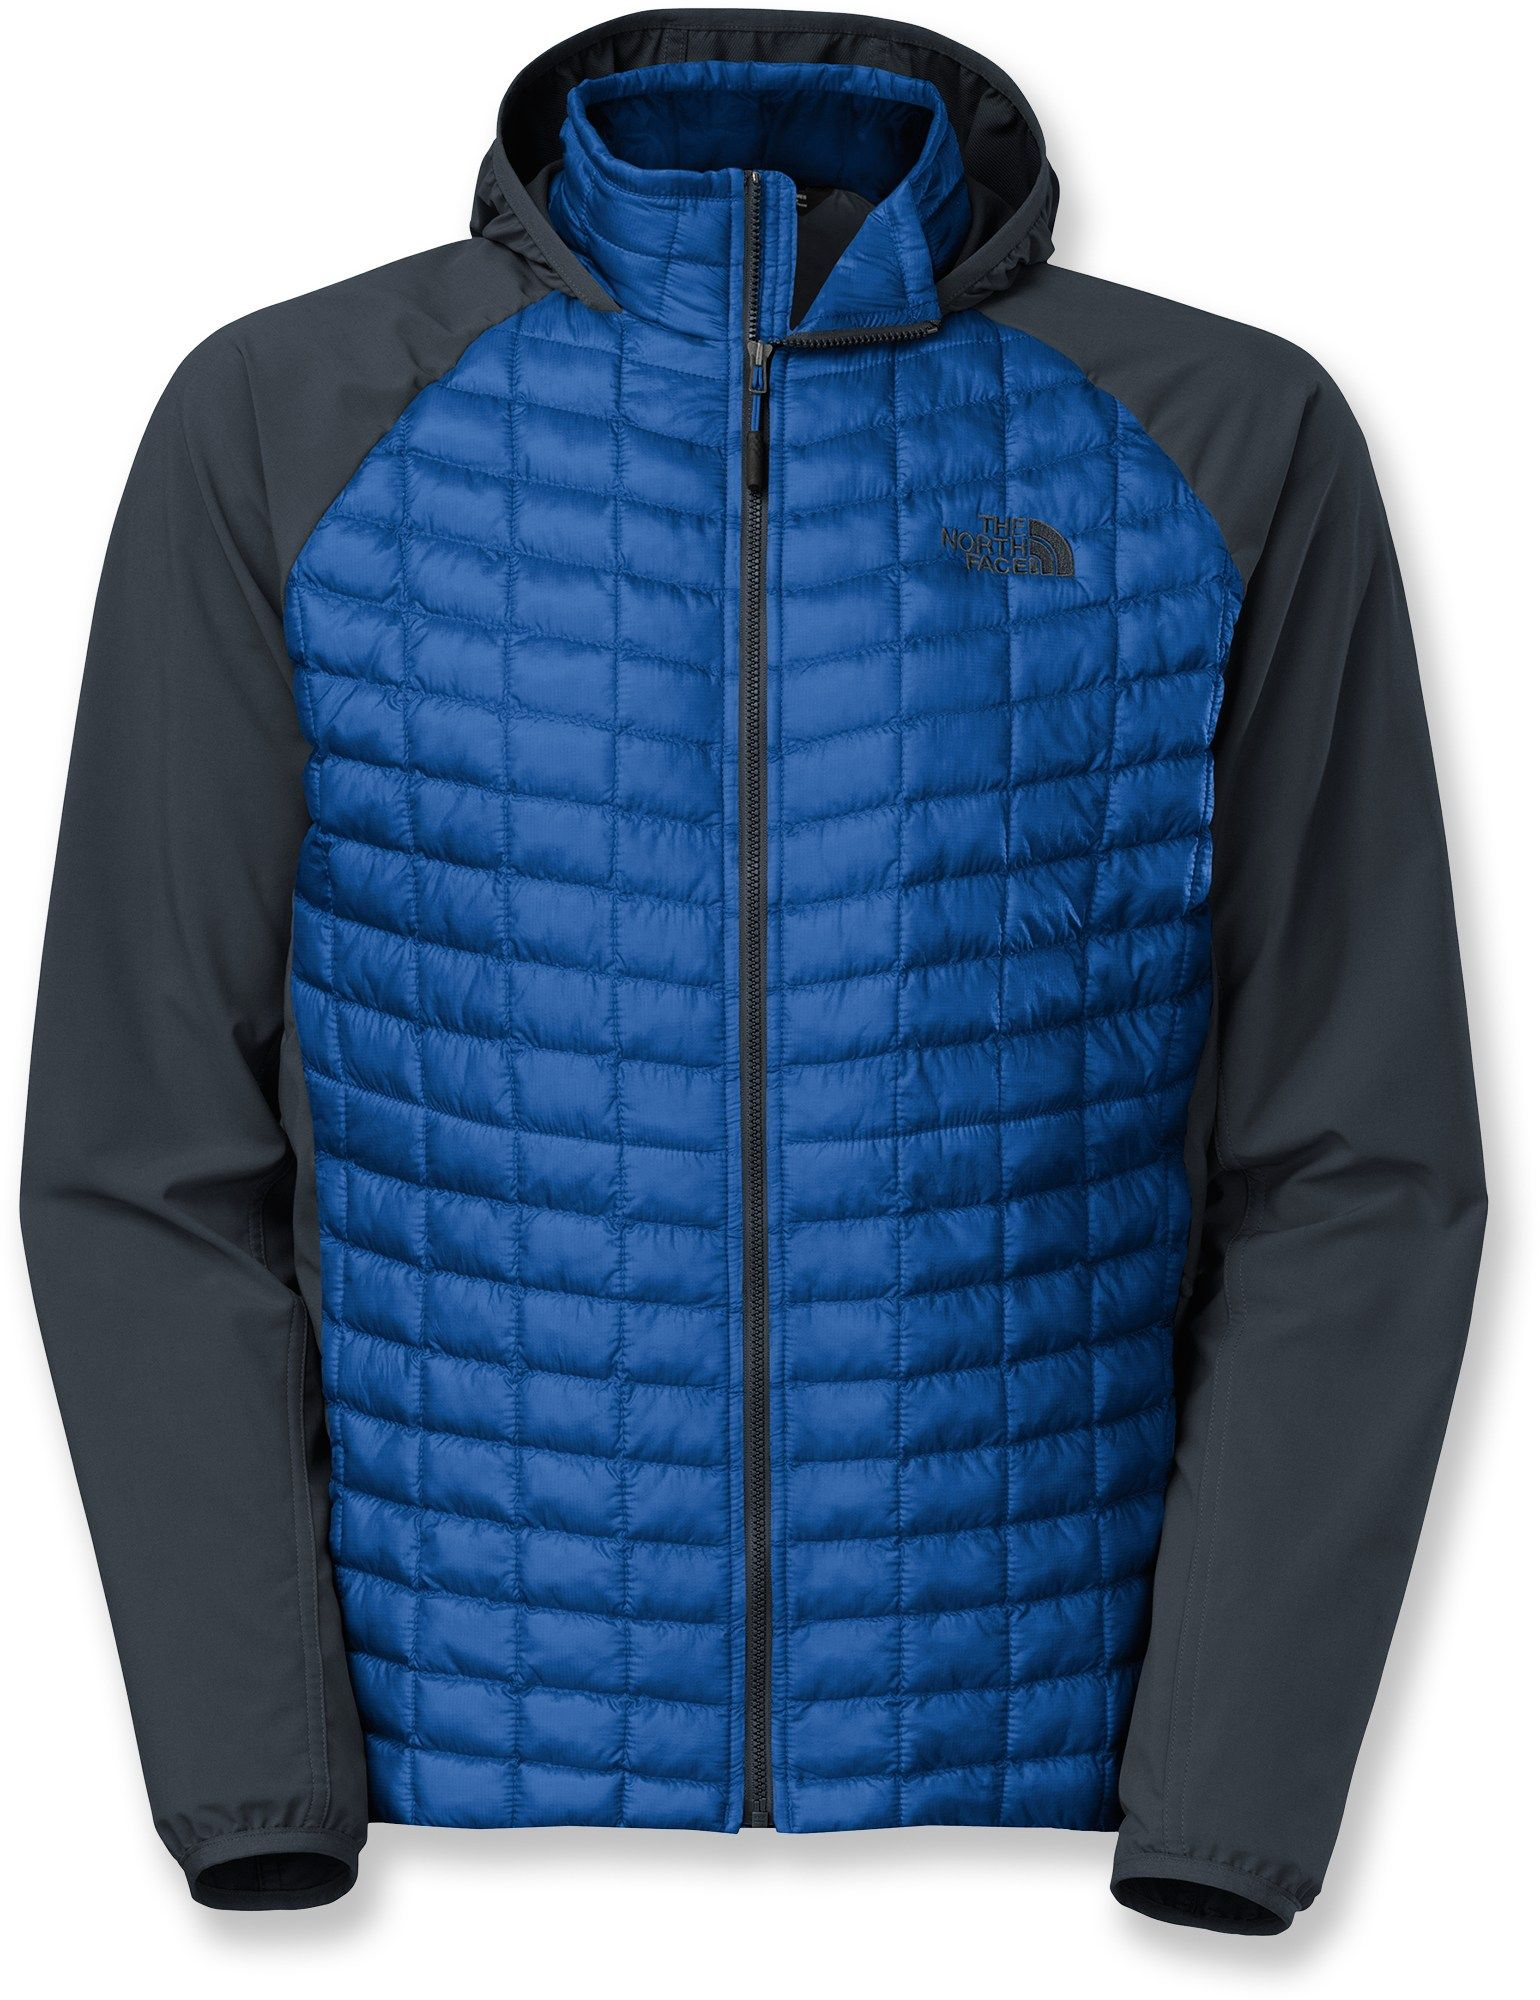 2c76f593f6ab ThermoBall Hybrid Hoodie - Men's | *Apparel & Accessories* | Winter ...